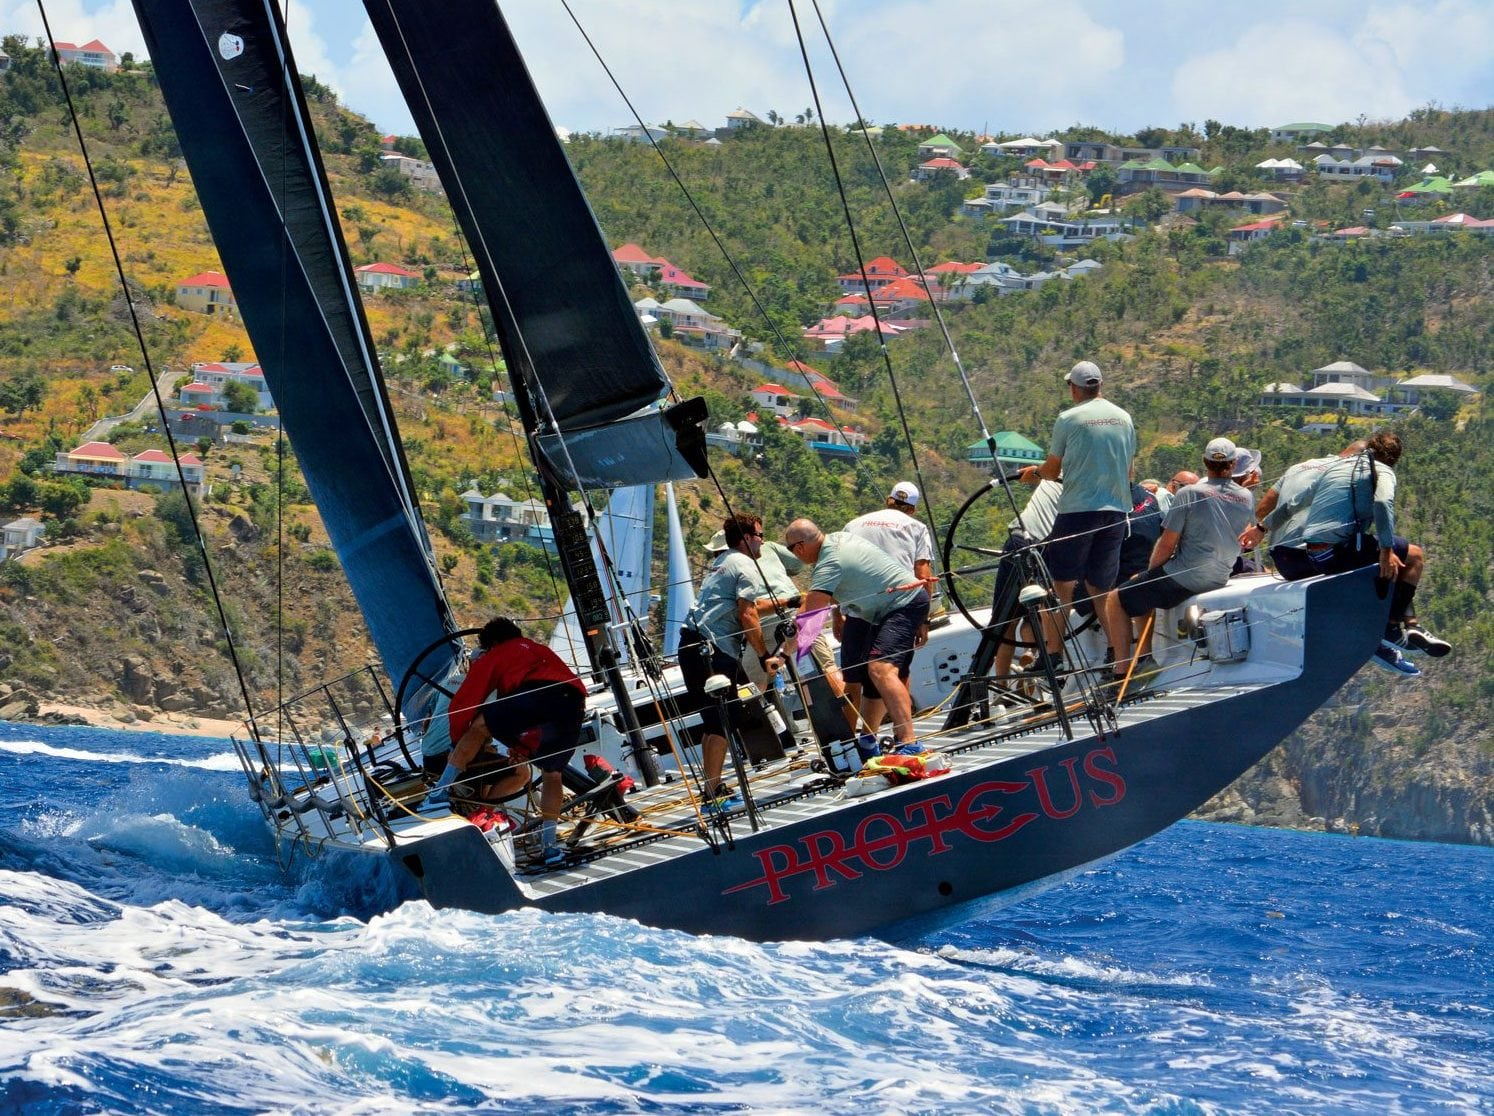 Proteus continued her winning ways. Photography by Rosemond Gréaux